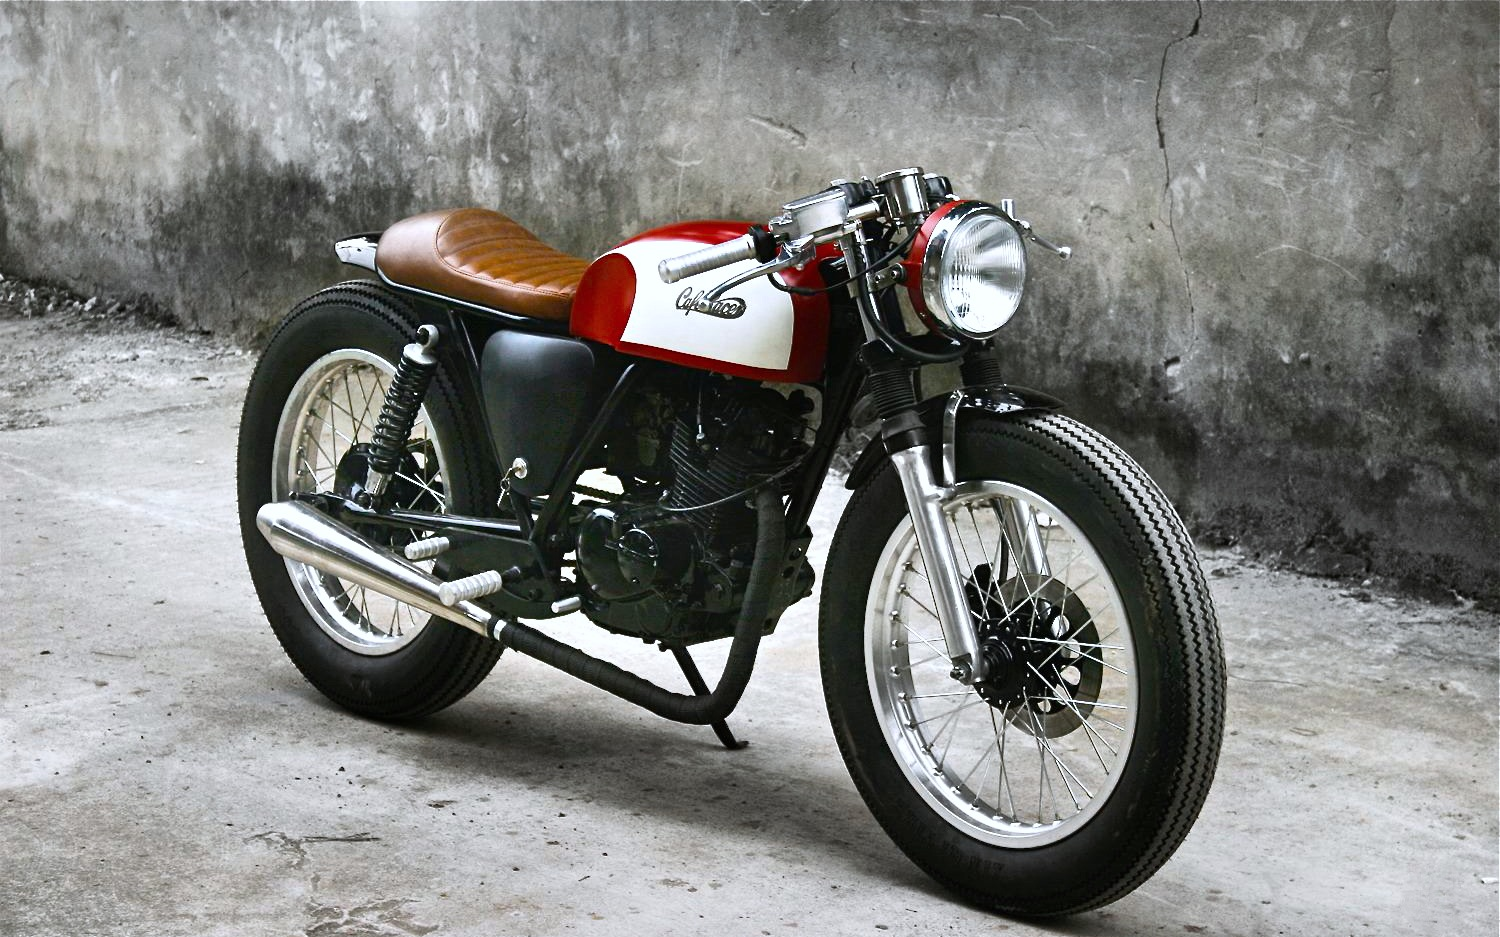 Duong Doan S Red Cafe Racer Inazuma Caf 233 Racer